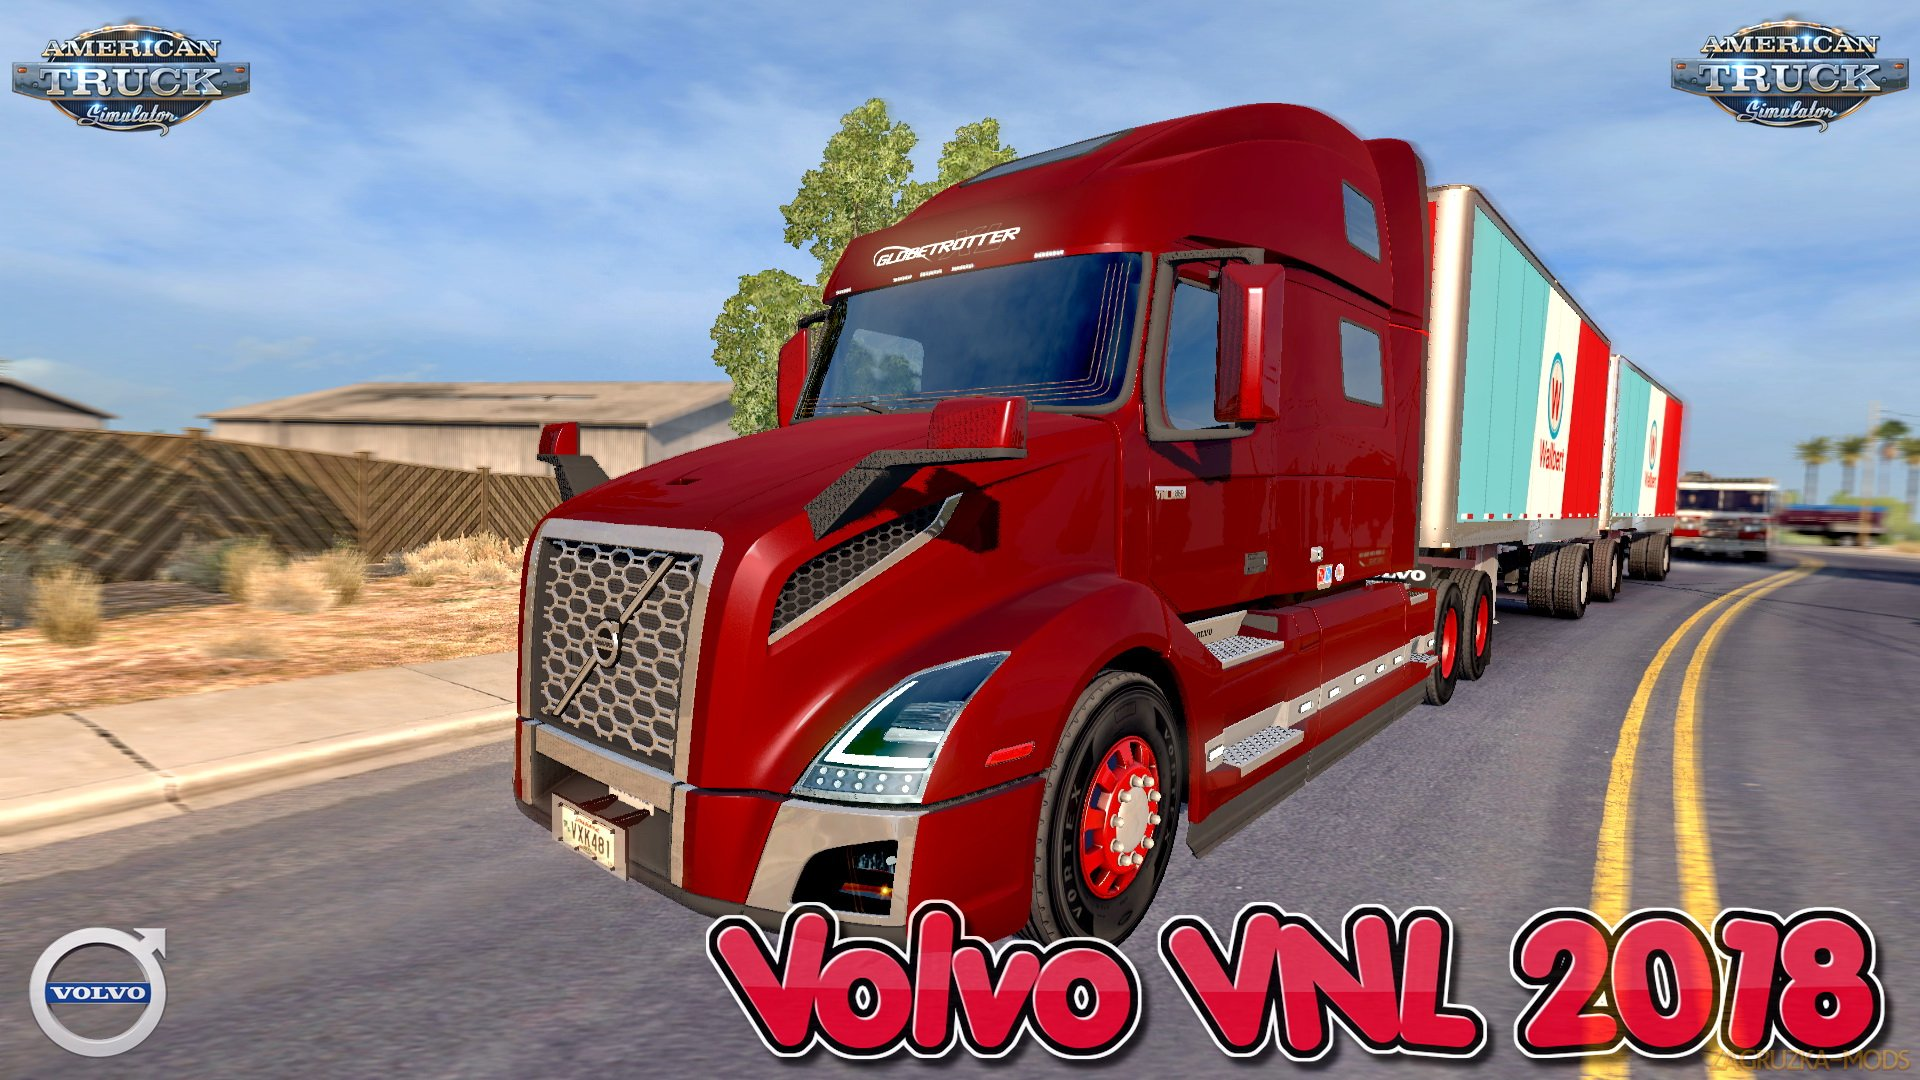 Volvo VNL 2019 + Interior v2.26 by galimim (1.39.x) for ATS